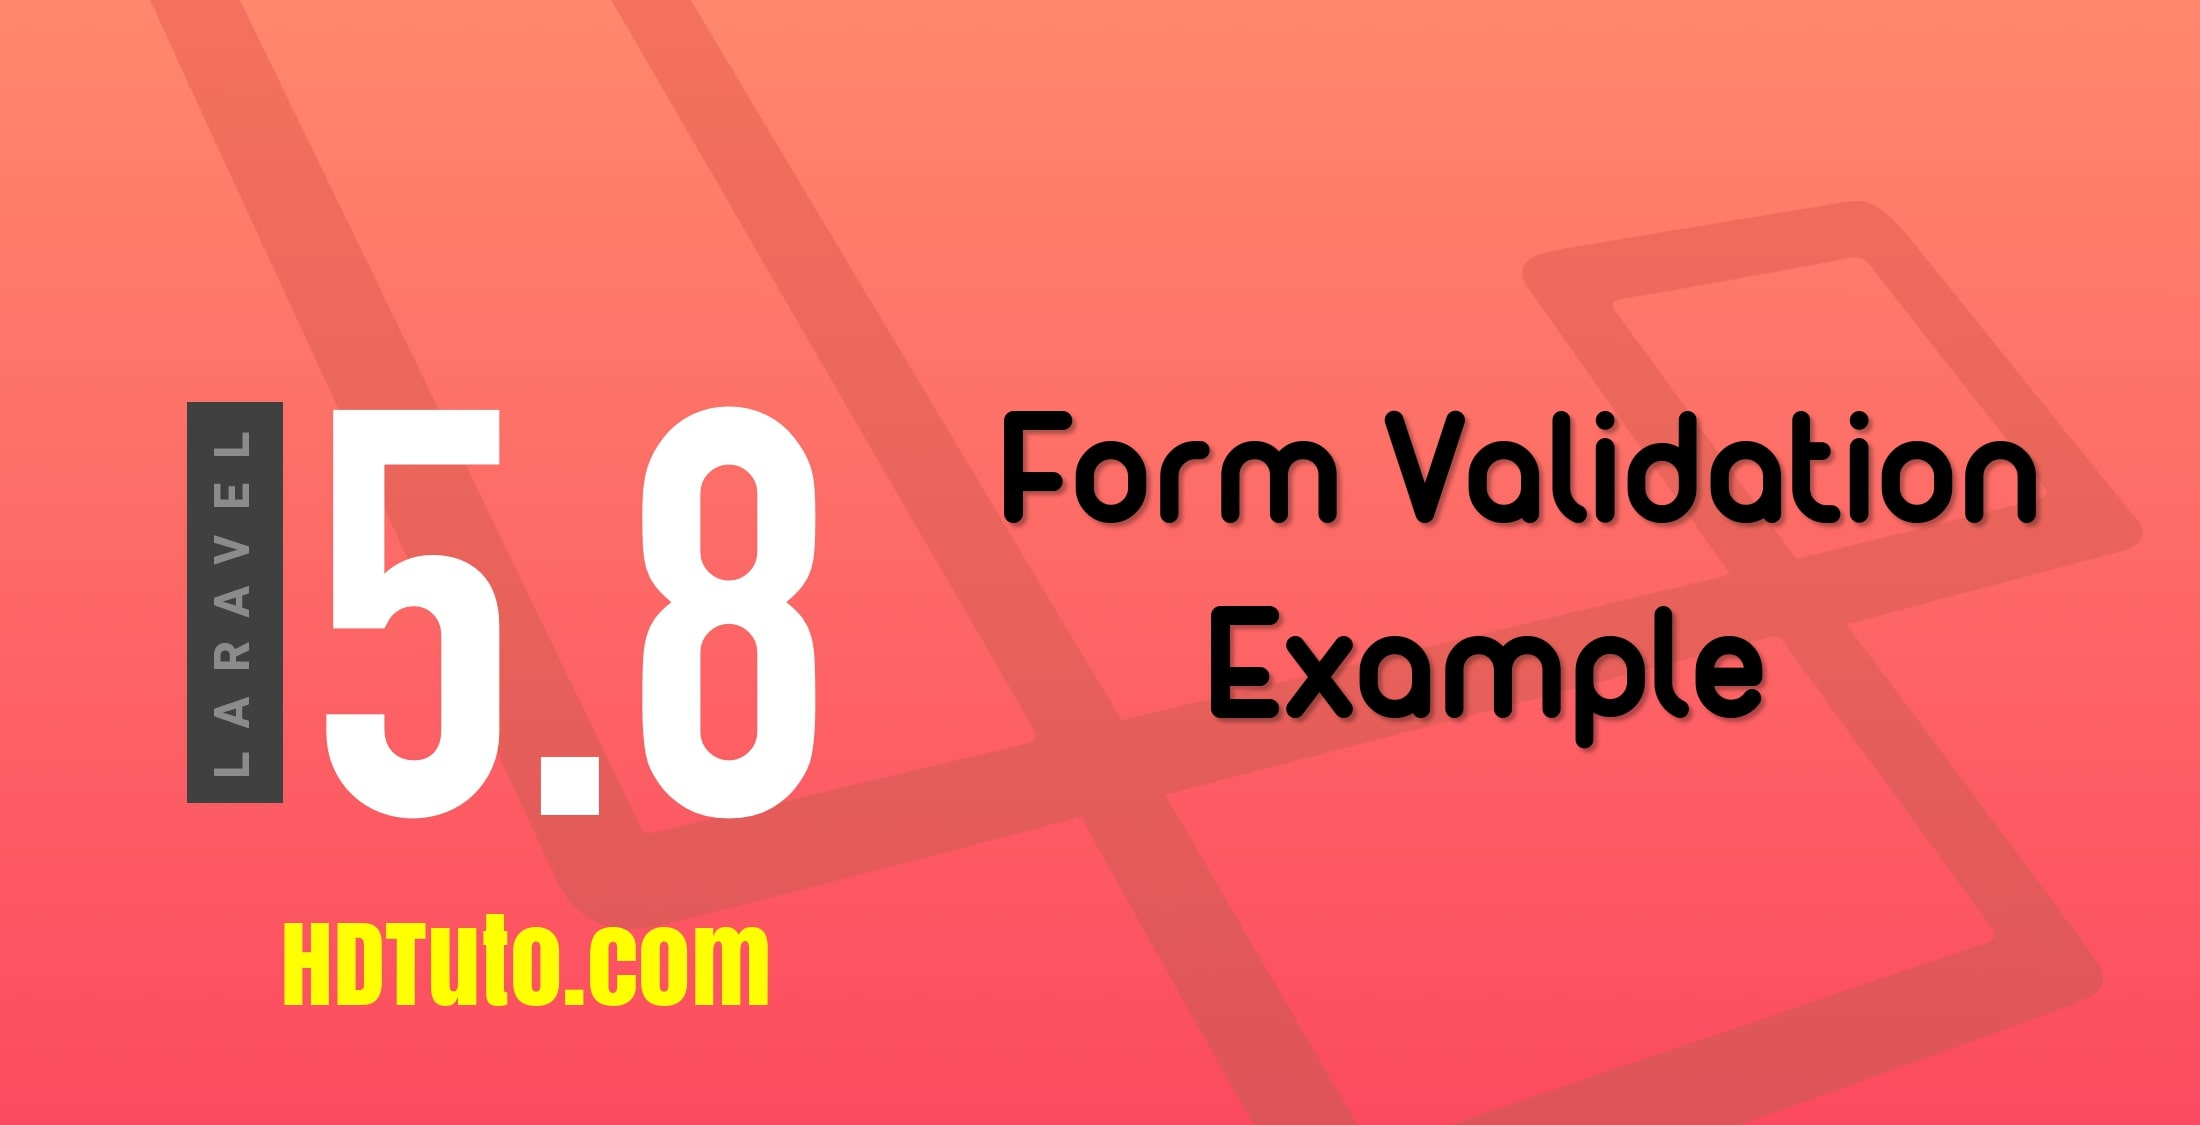 Laravel 5 8 form validation example - HDTuto com